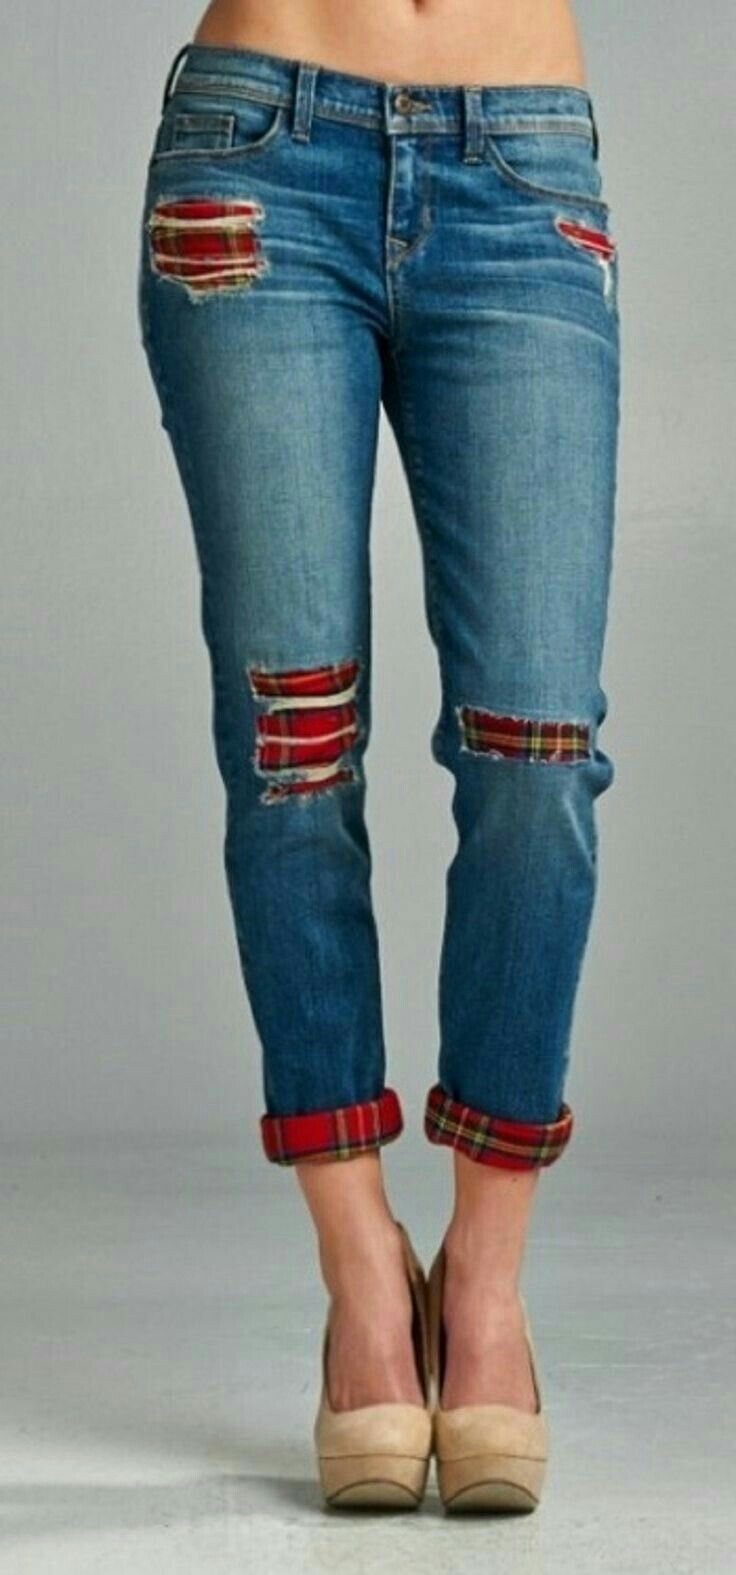 Match patches with new cuffs for adorable jean upcycling!